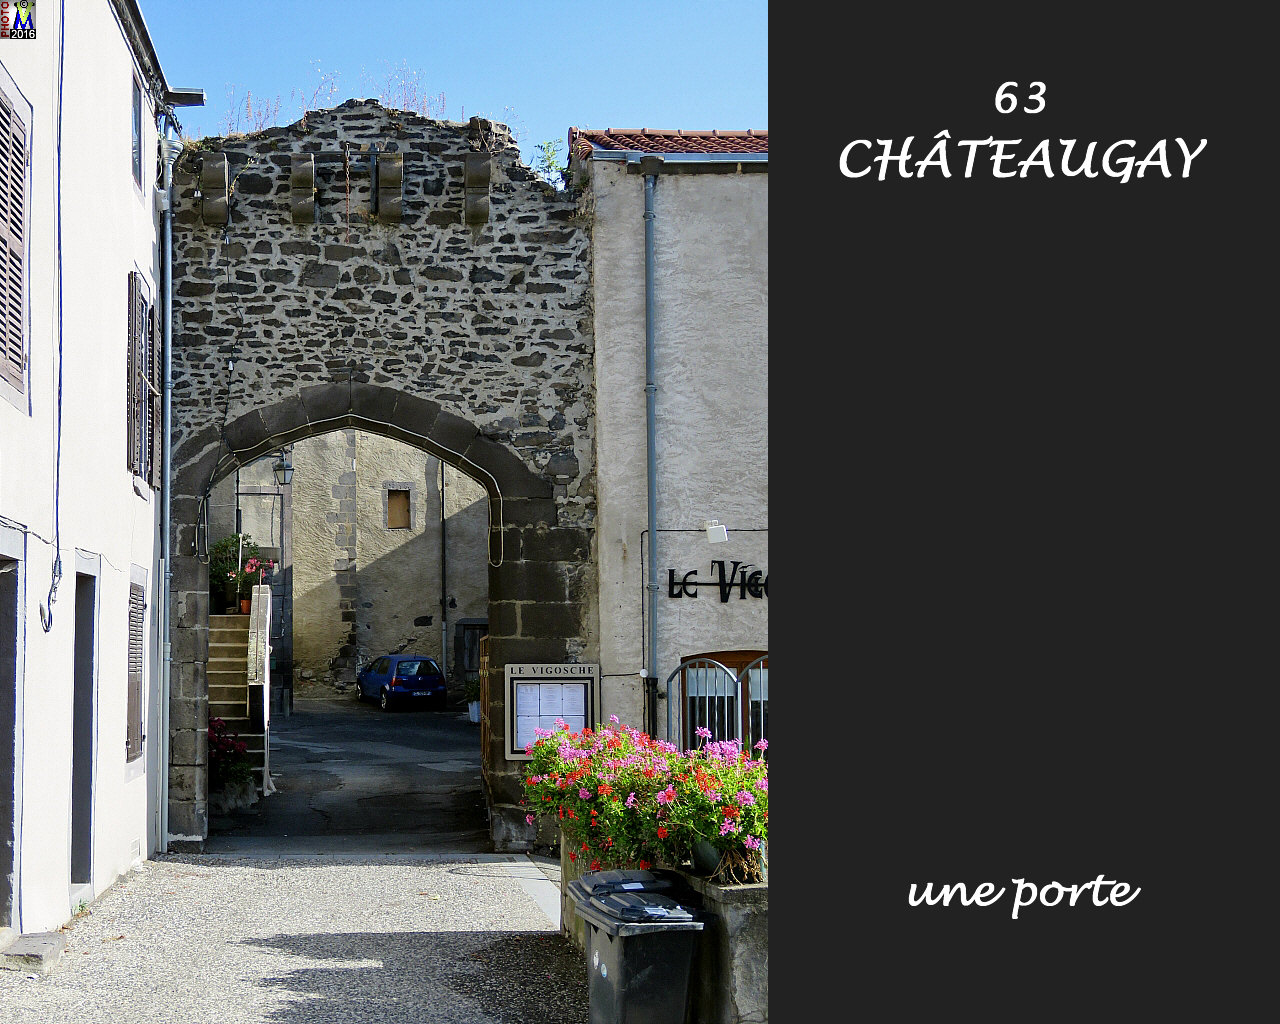 63CHATEAUGAY_porte_100.jpg